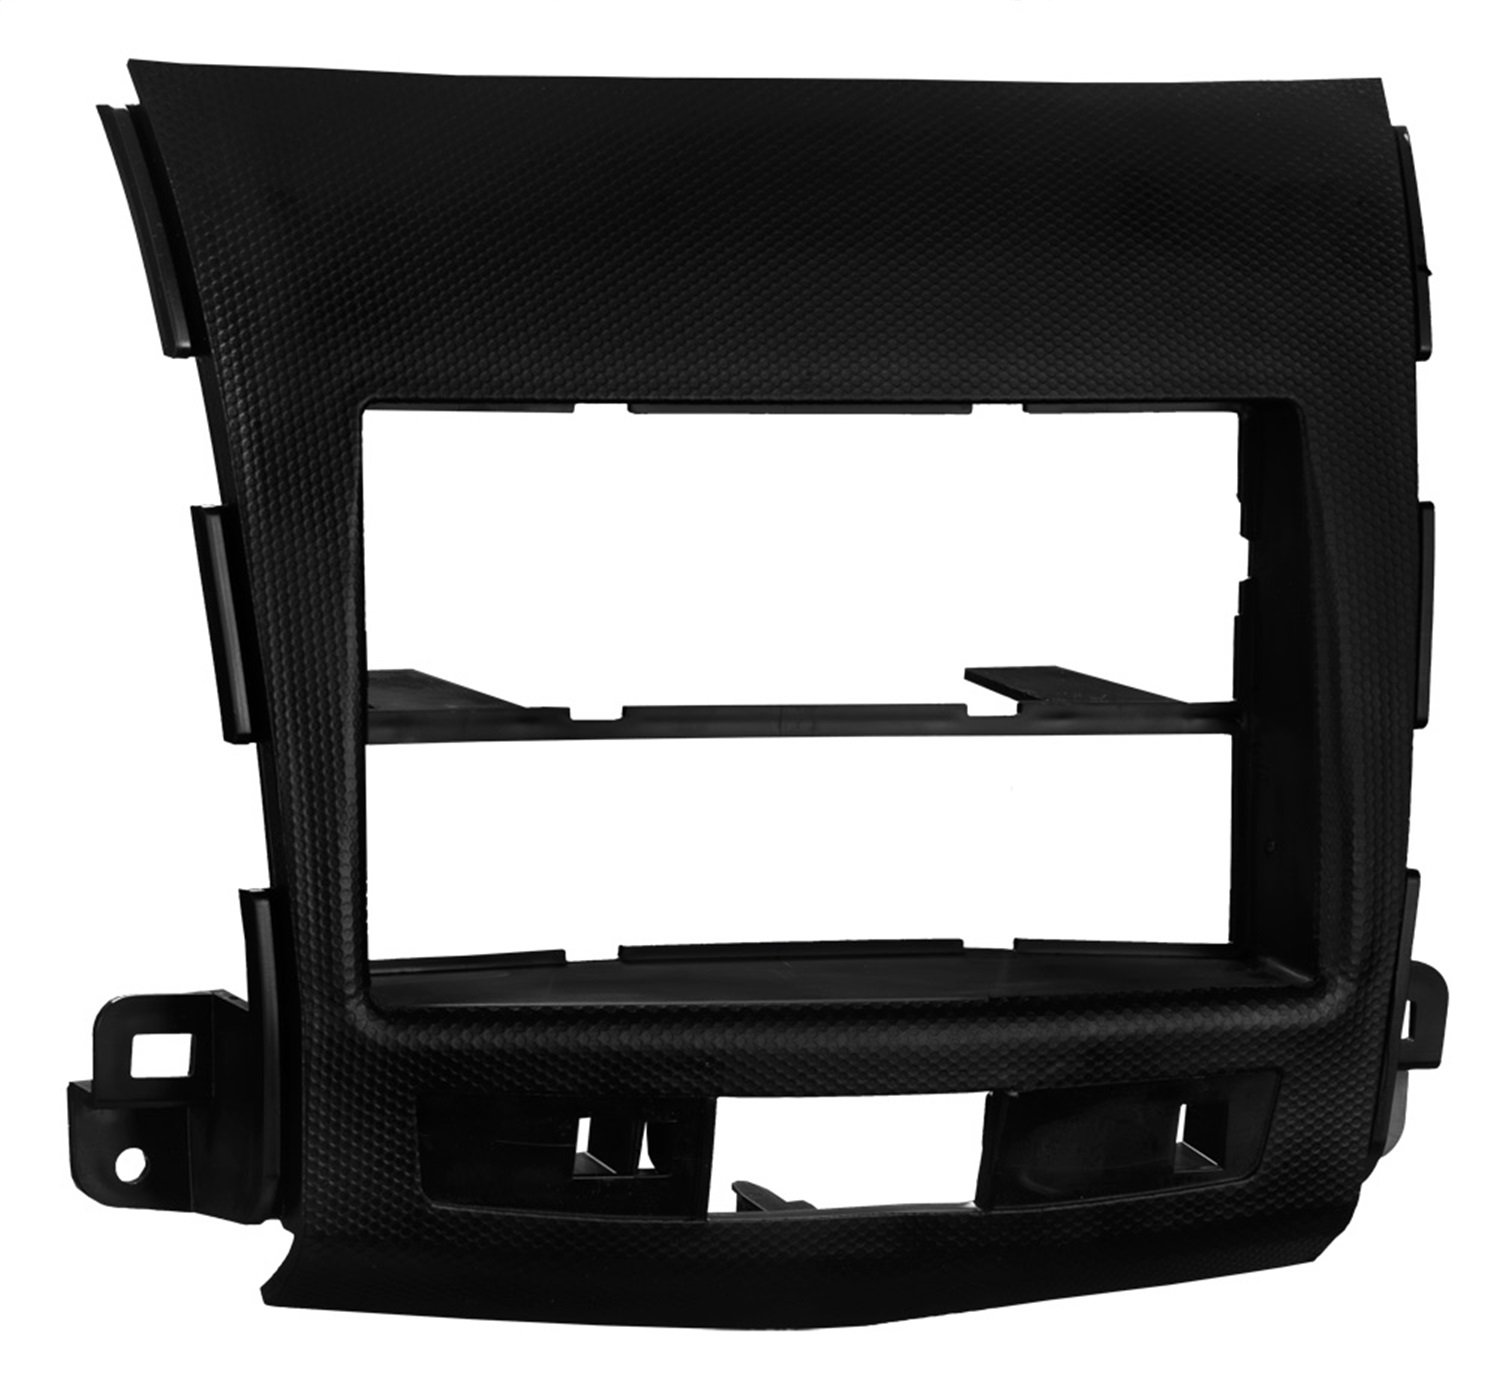 Metra 99-7013TB Single DIN Dash Installation Kit for 2007-2010 Mitsubishi Outlander Vehicles